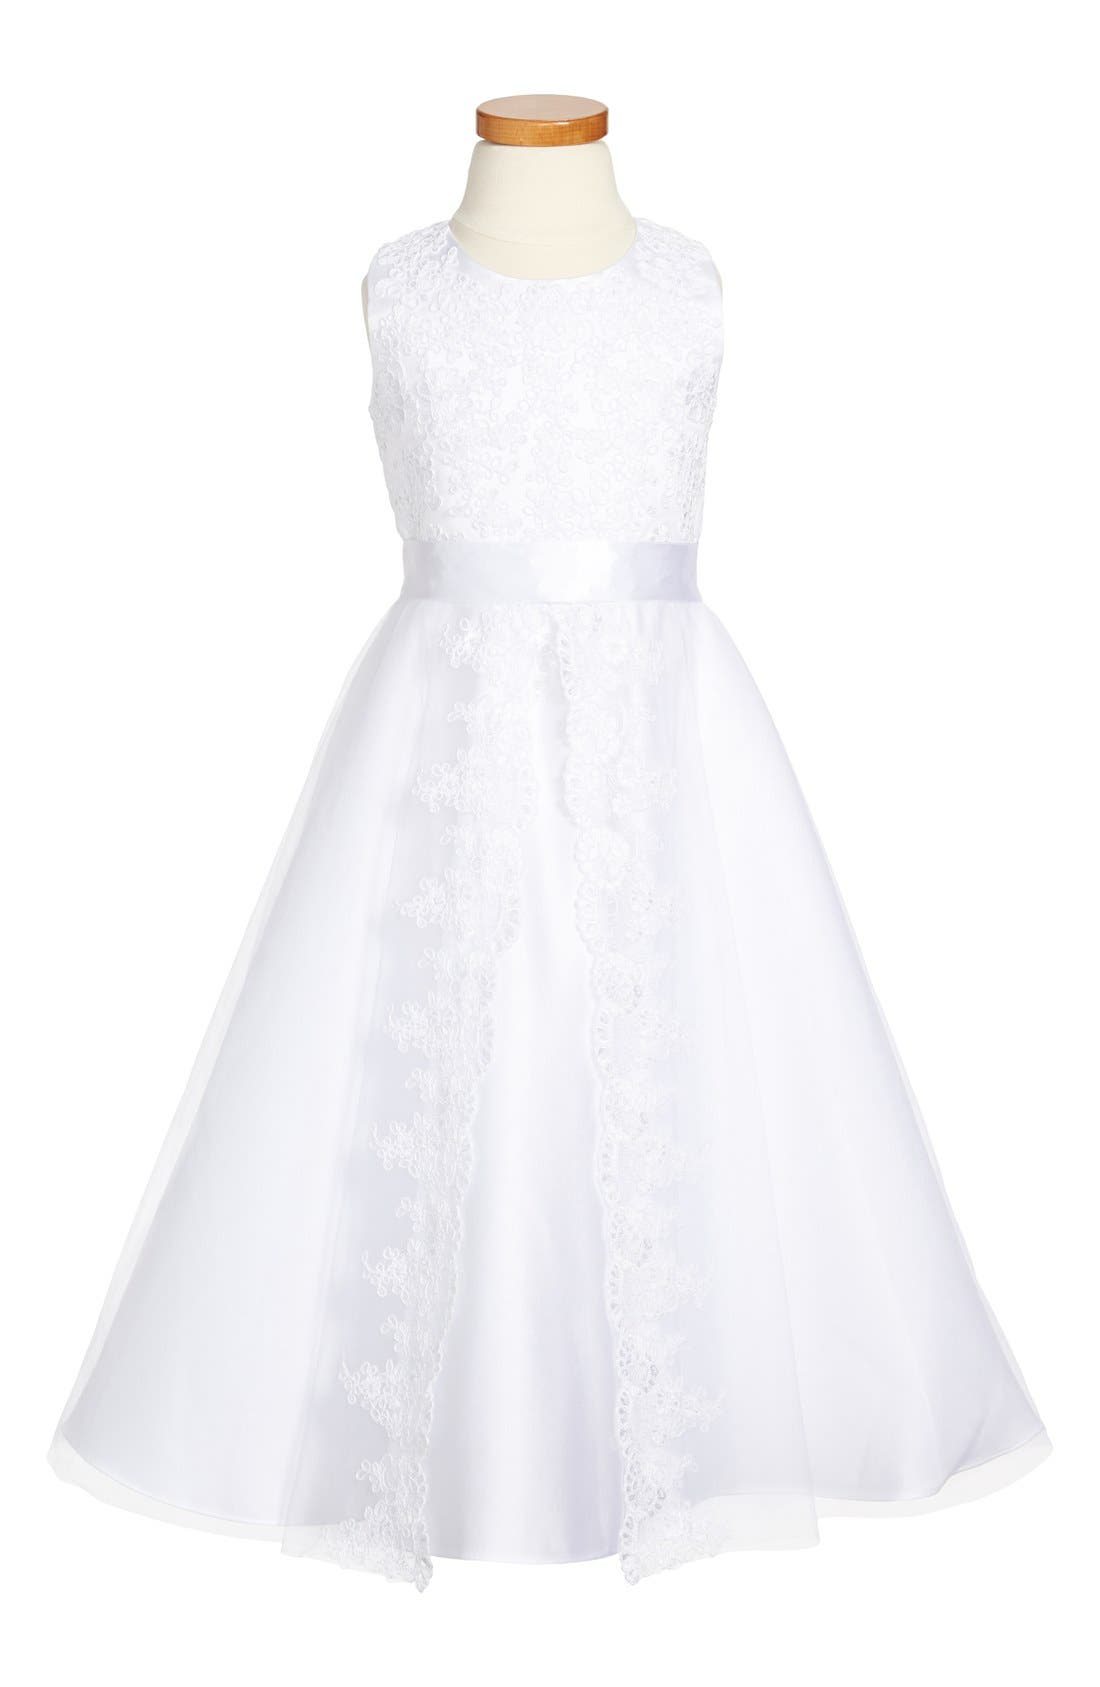 Main Image - Joan Calabrese for Mon Cheri First Communion Dress (Little Girls & Big Girls)